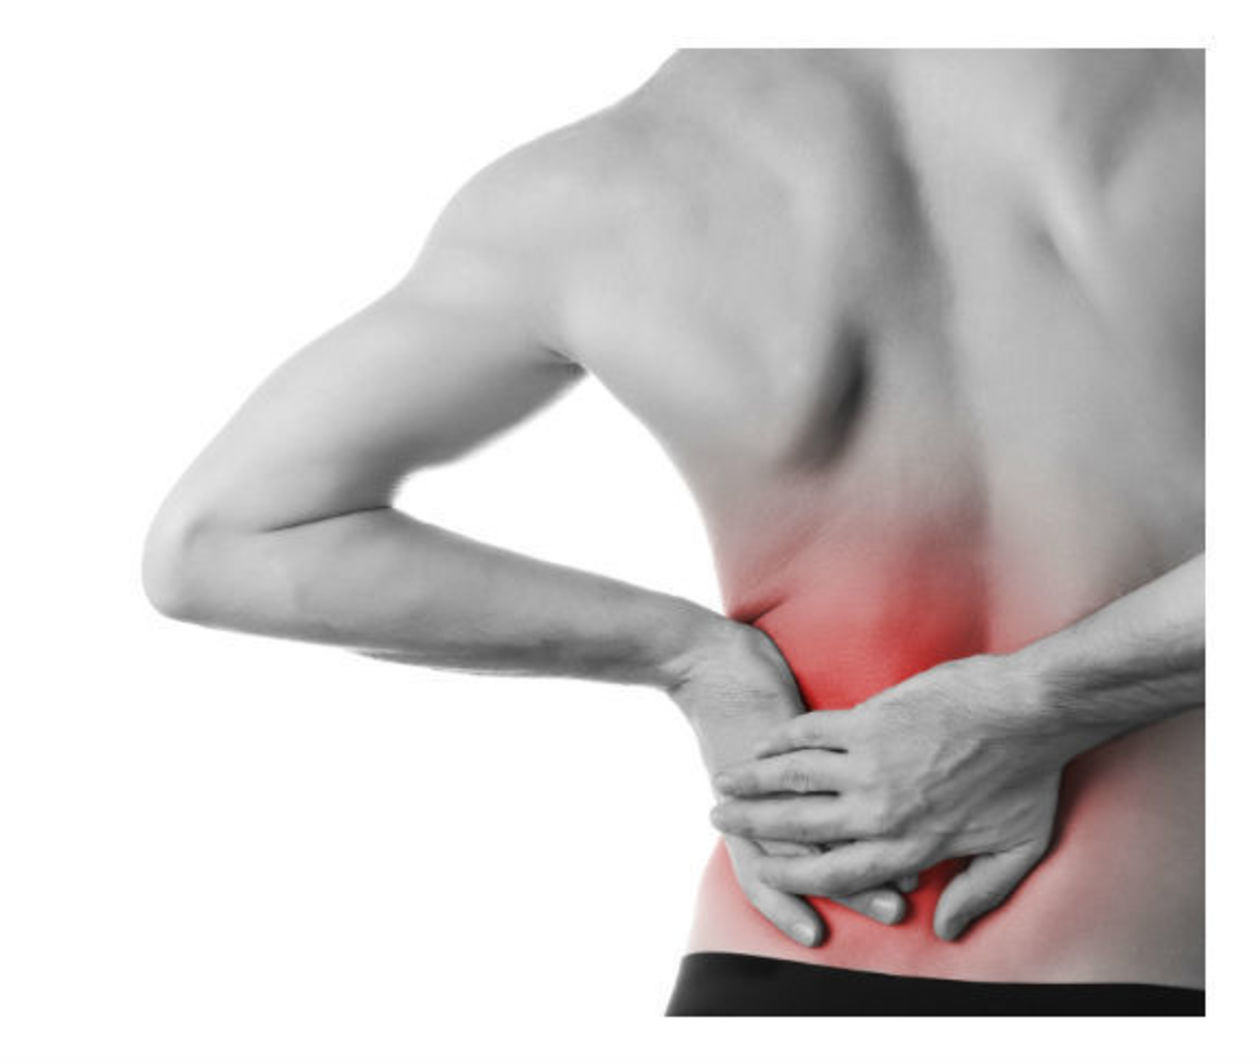 Cognitive Behavioural Skills to Treat Back Pain: The Back Skills Training (BeST) Programme